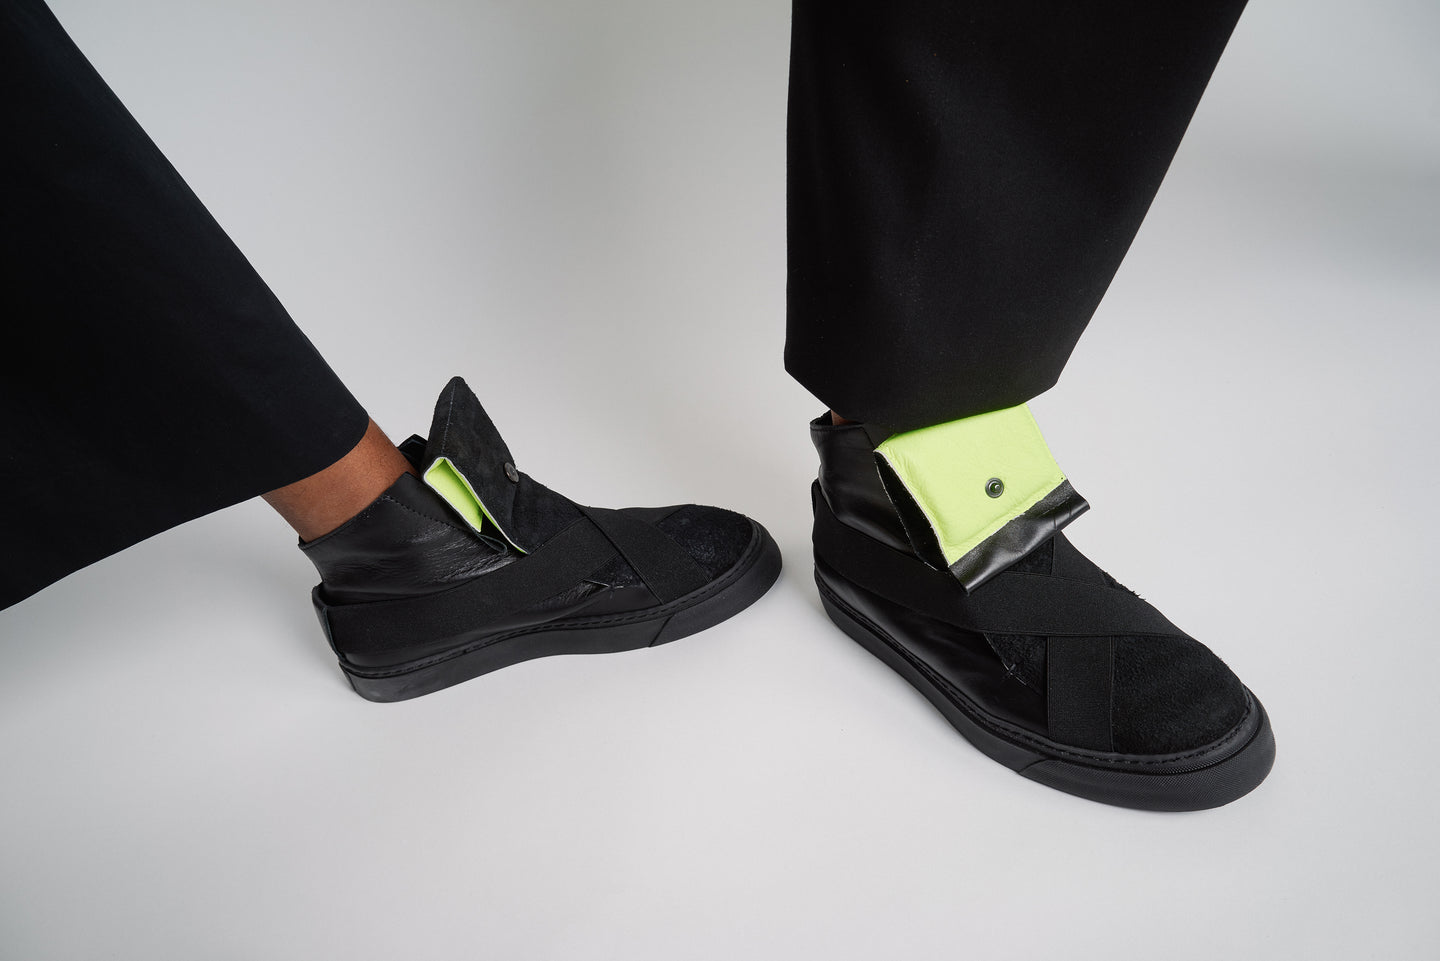 HIGH TOP UNISEX SNEAKERS WITH NEON AND BLACK LEATHER